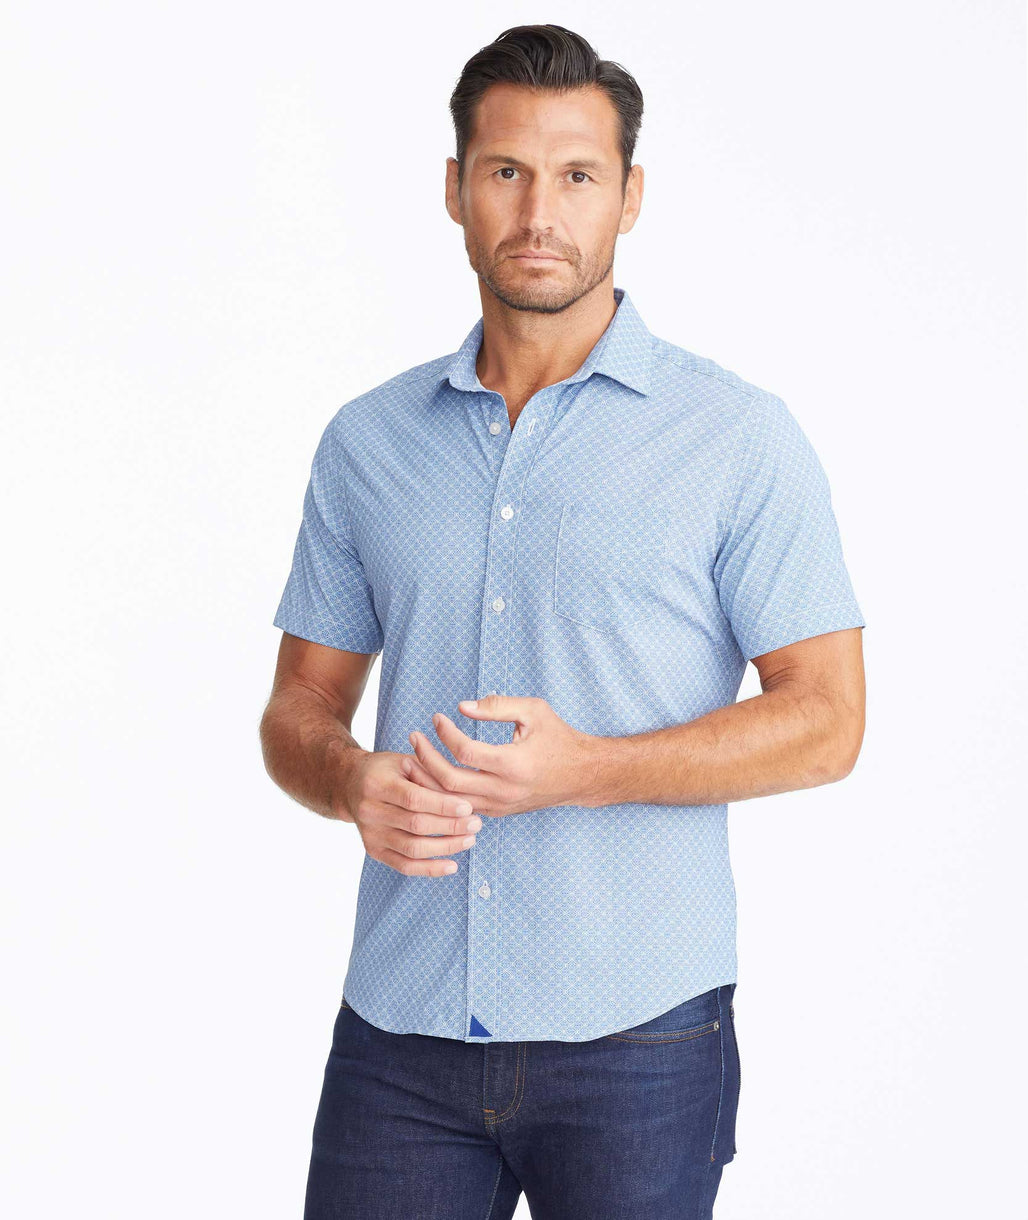 Model wearing a Navy Wrinkle-Free Performance Short-Sleeve Weibel Shirt